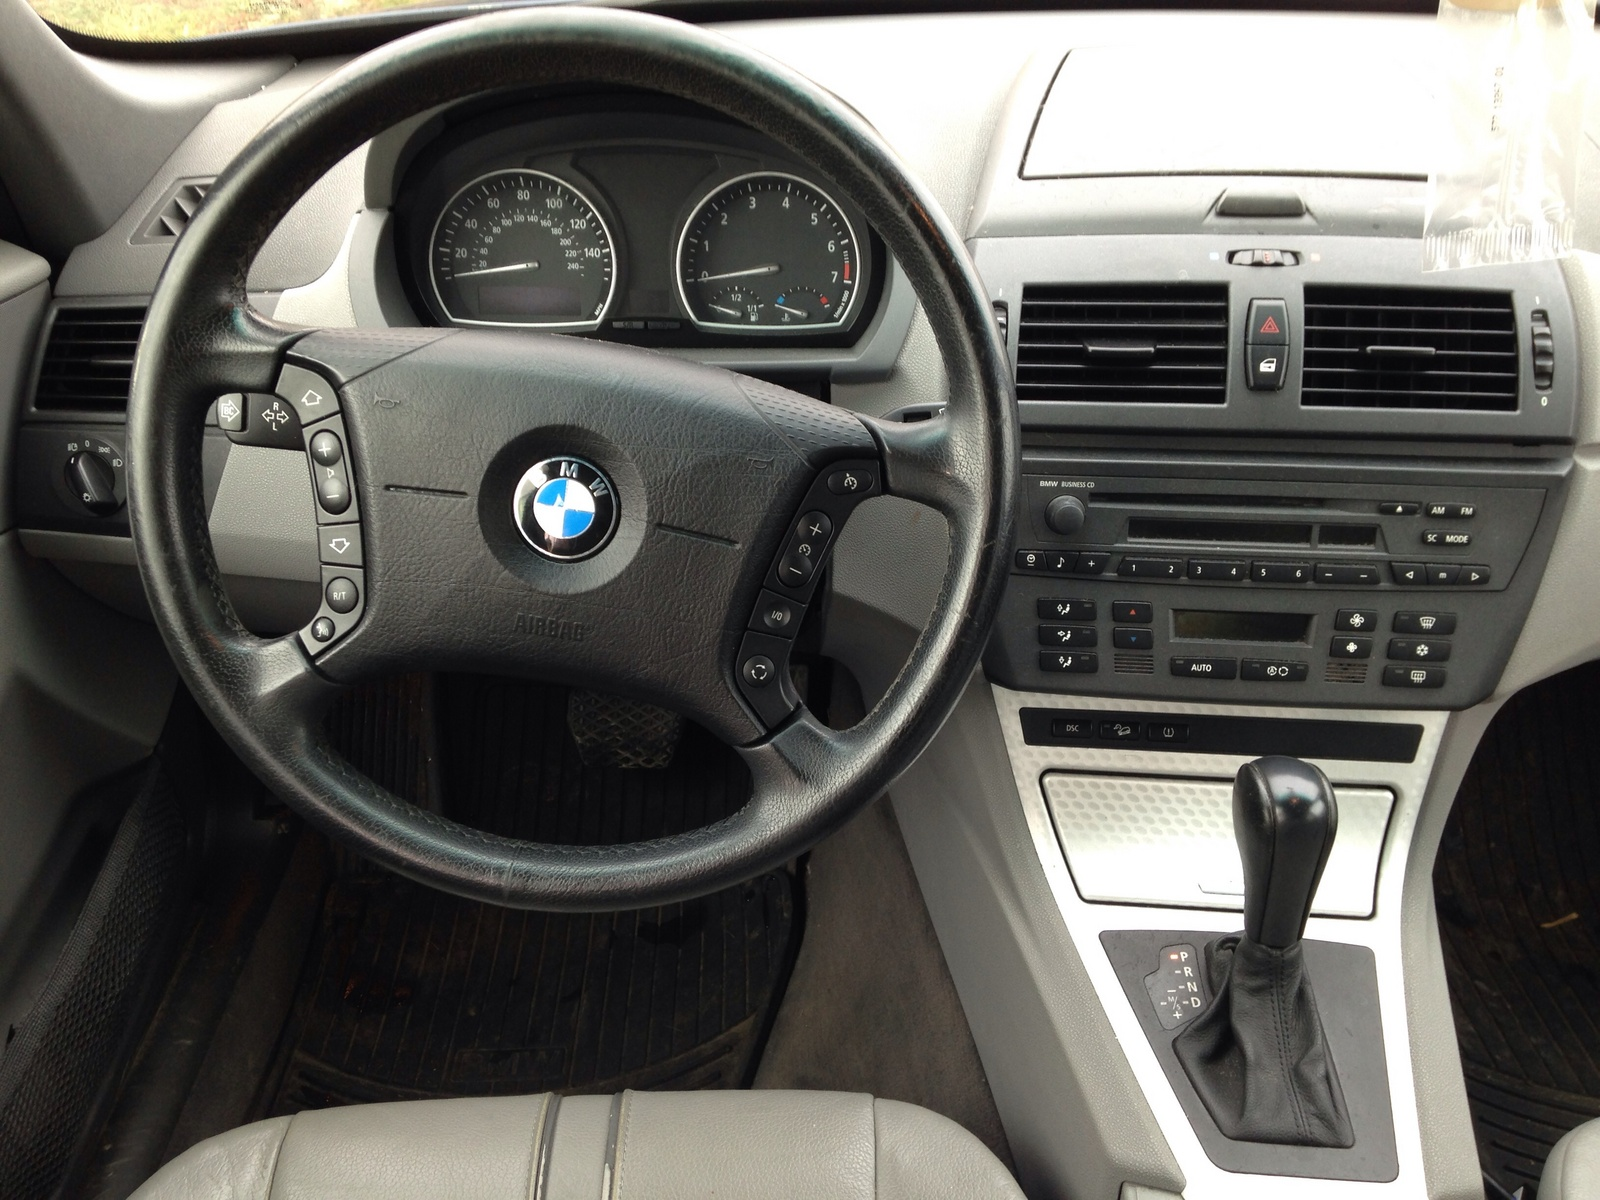 2004 Bmw X3 Interior Pictures Cargurus